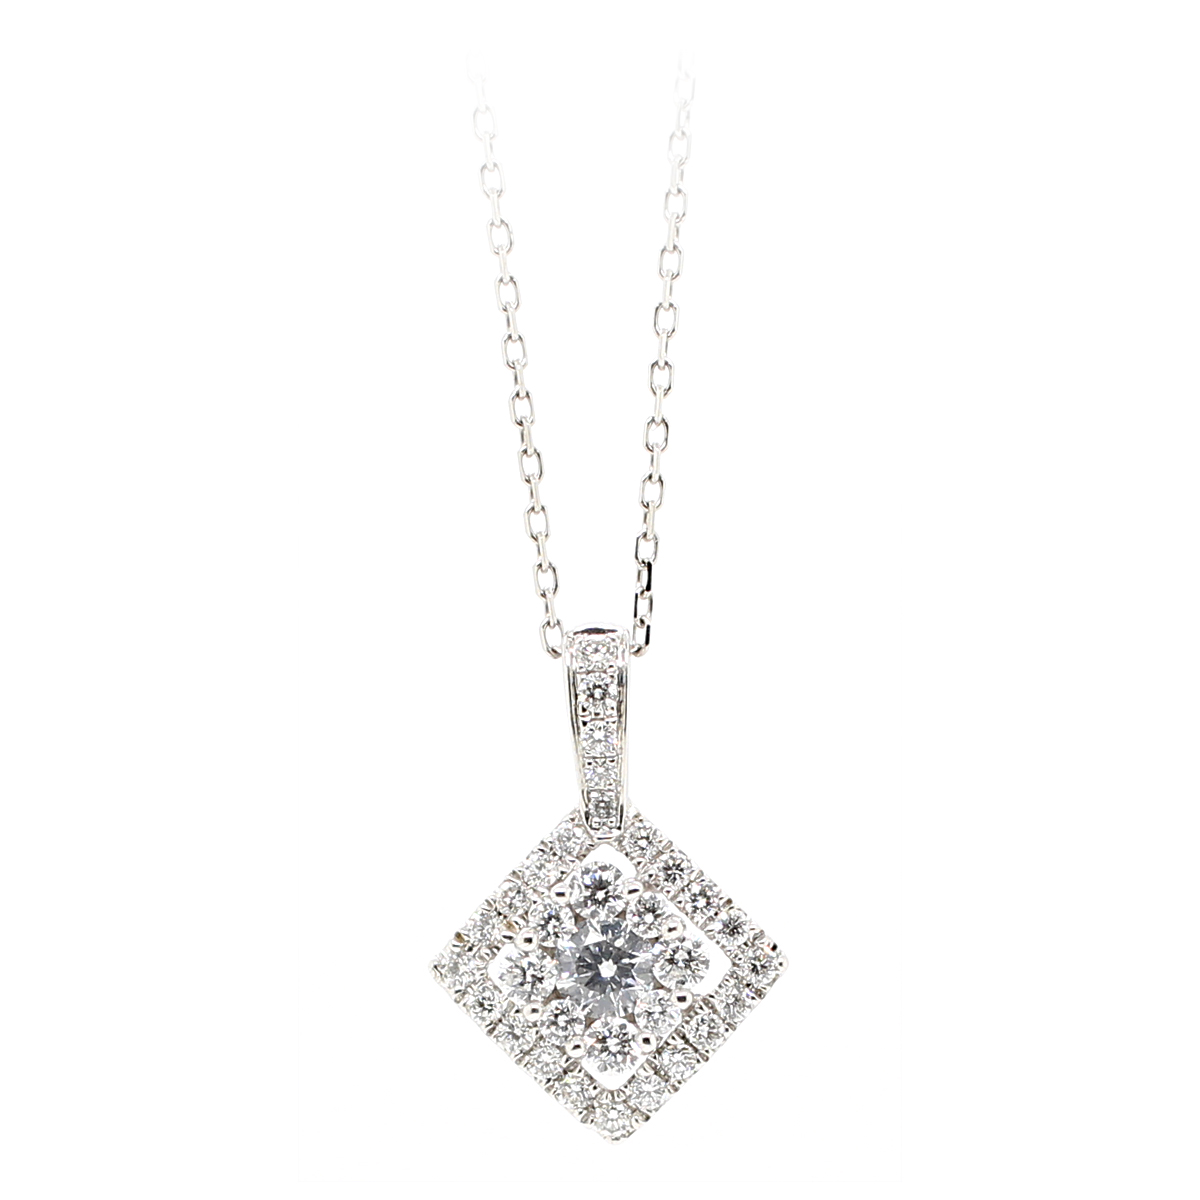 14 Karat White Gold Square Halo Diamond Pendant Necklace